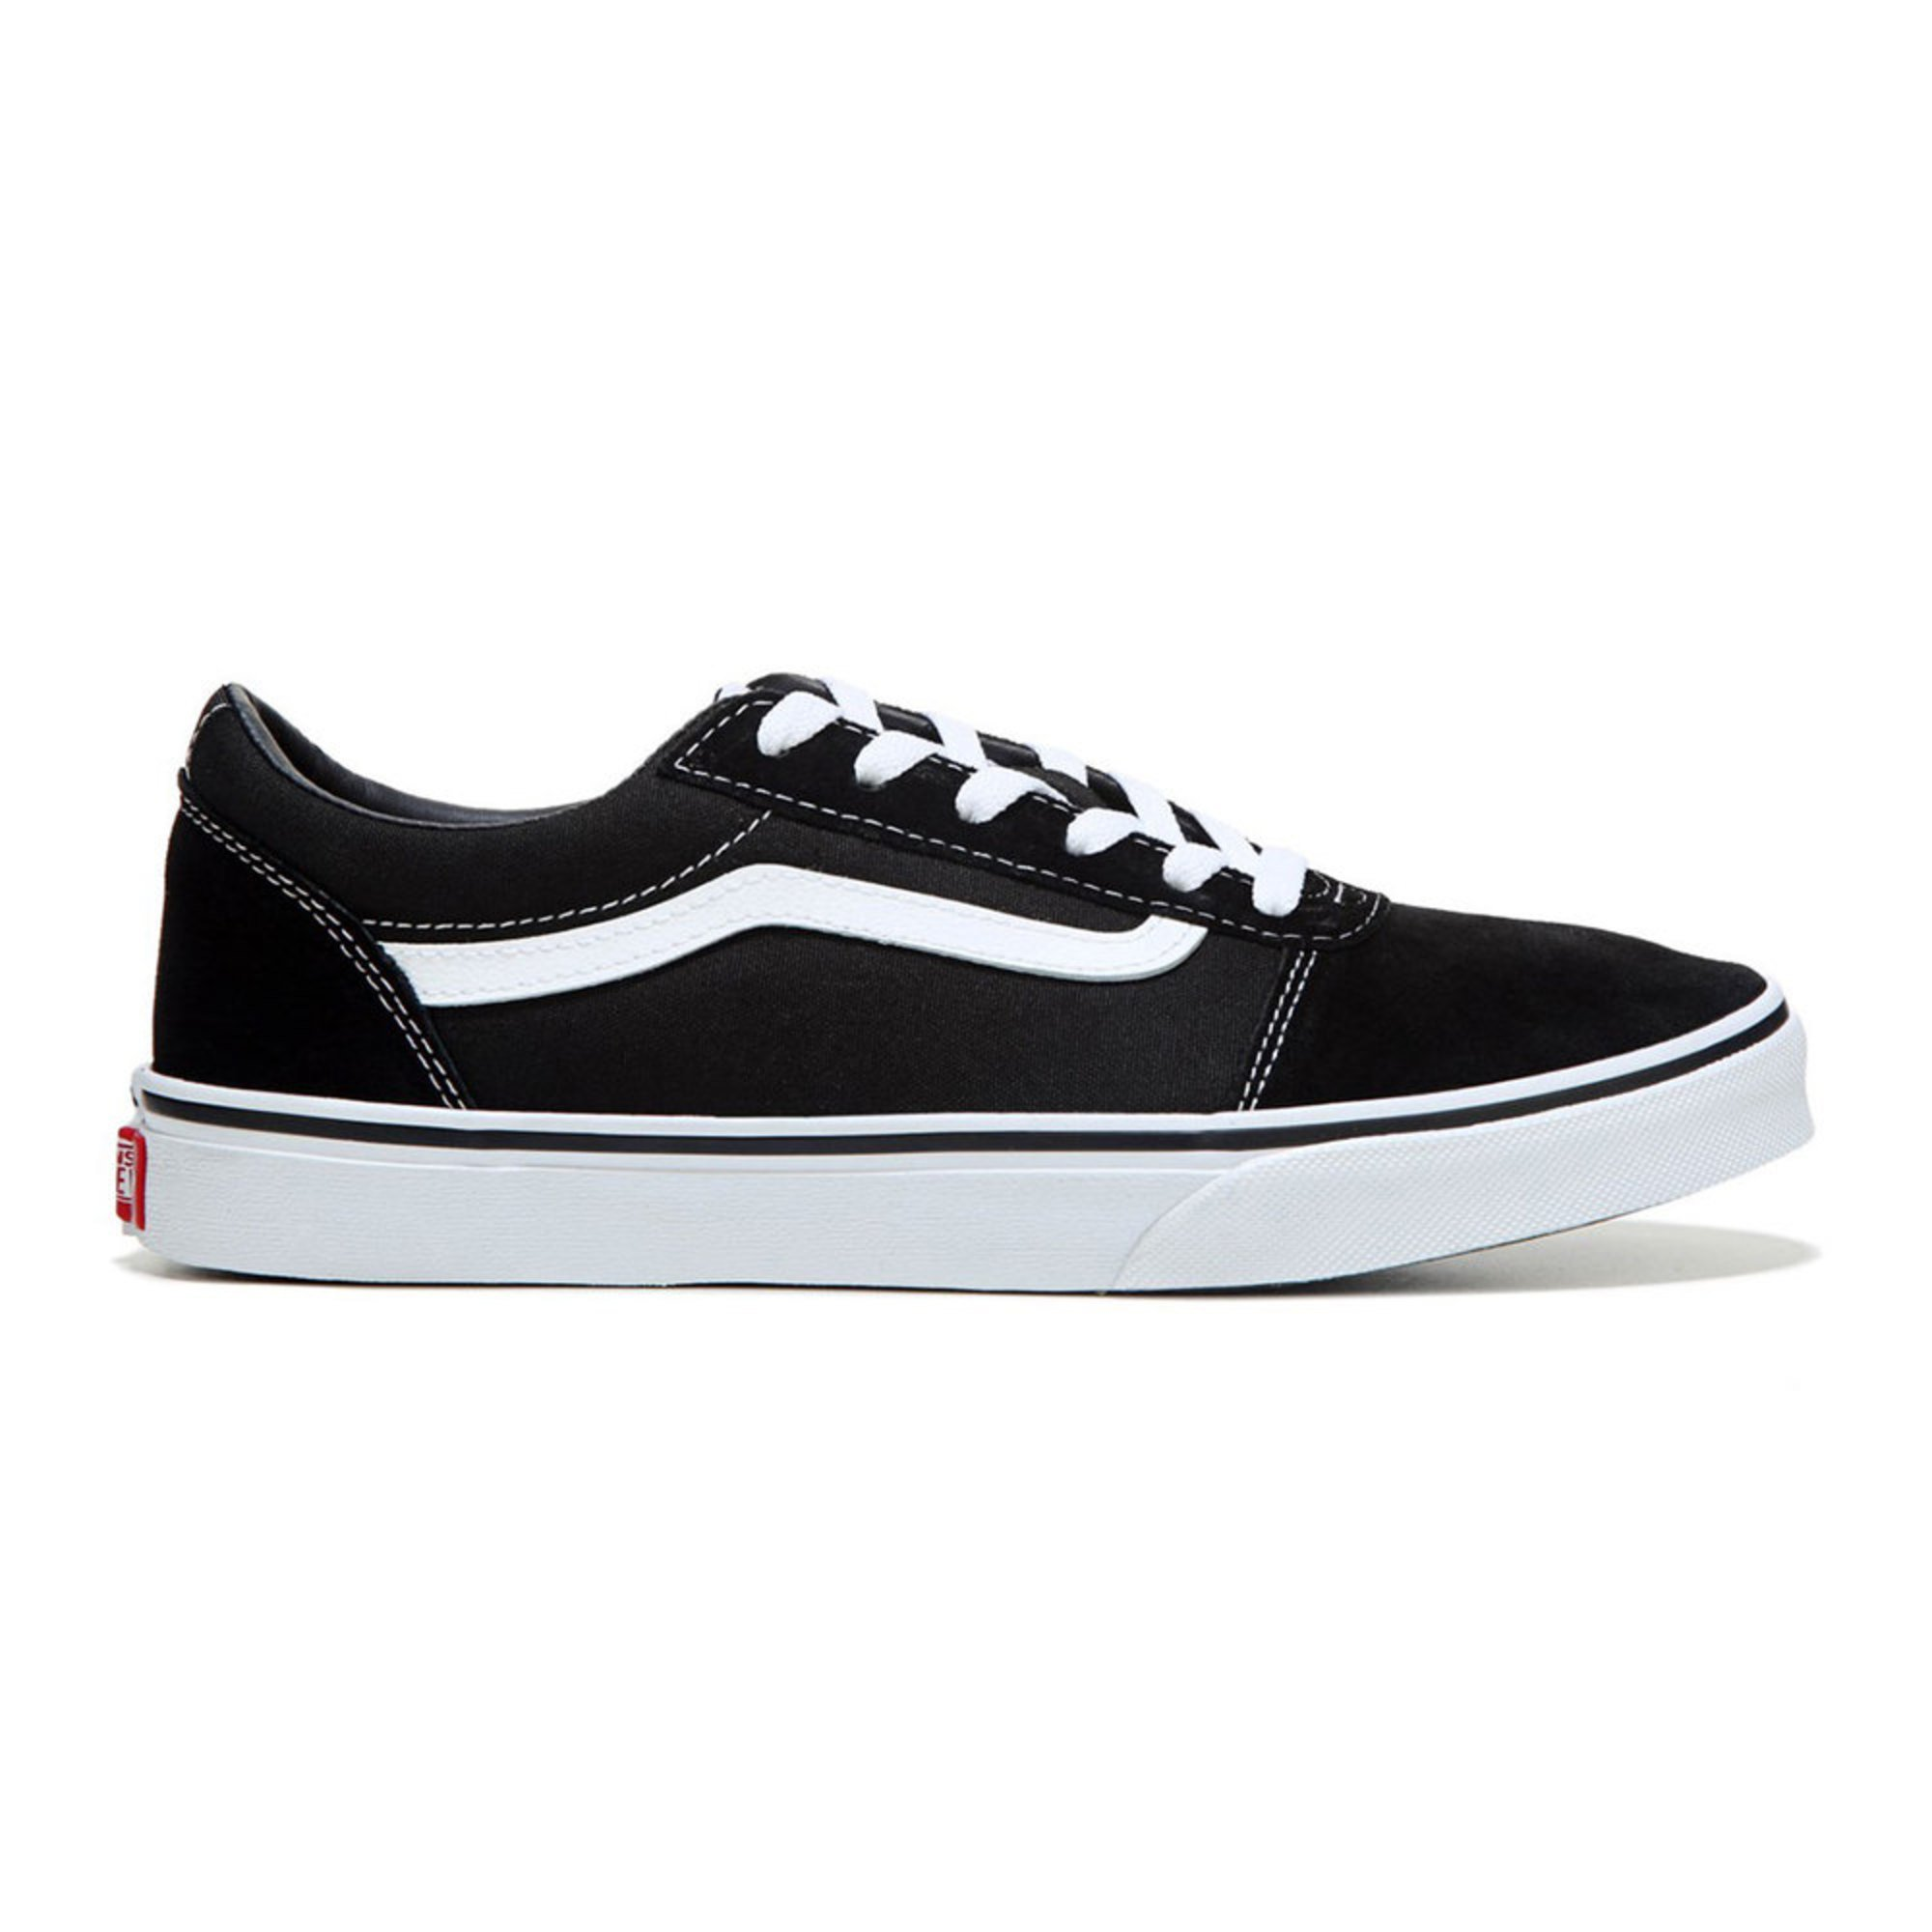 e85524653e52 Vans. Vans Boys Ward Suede Canvas Skate Shoe (Youth)